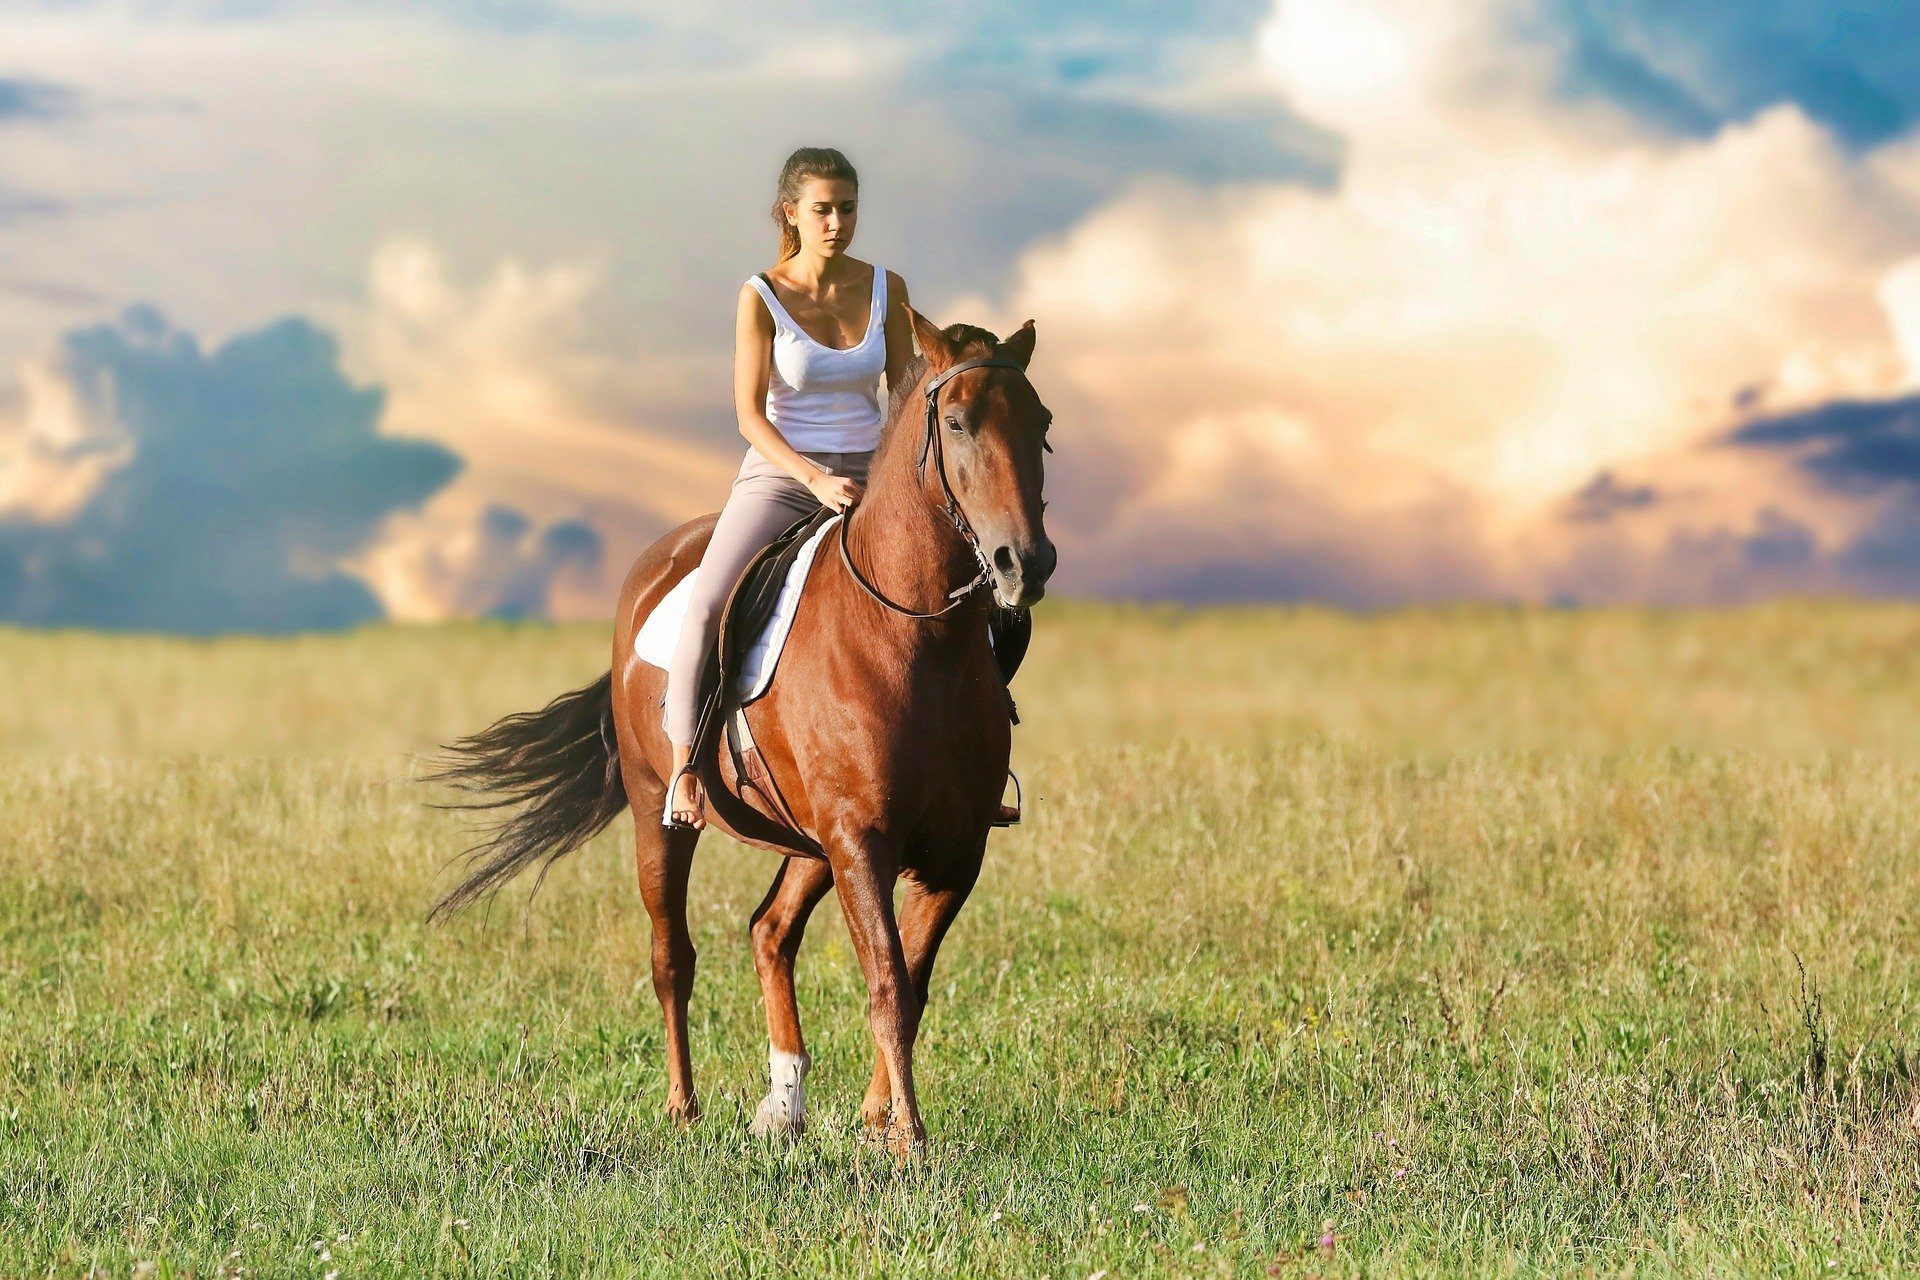 Pictured - A woman riding a horse out in the field   Source: Pixabay